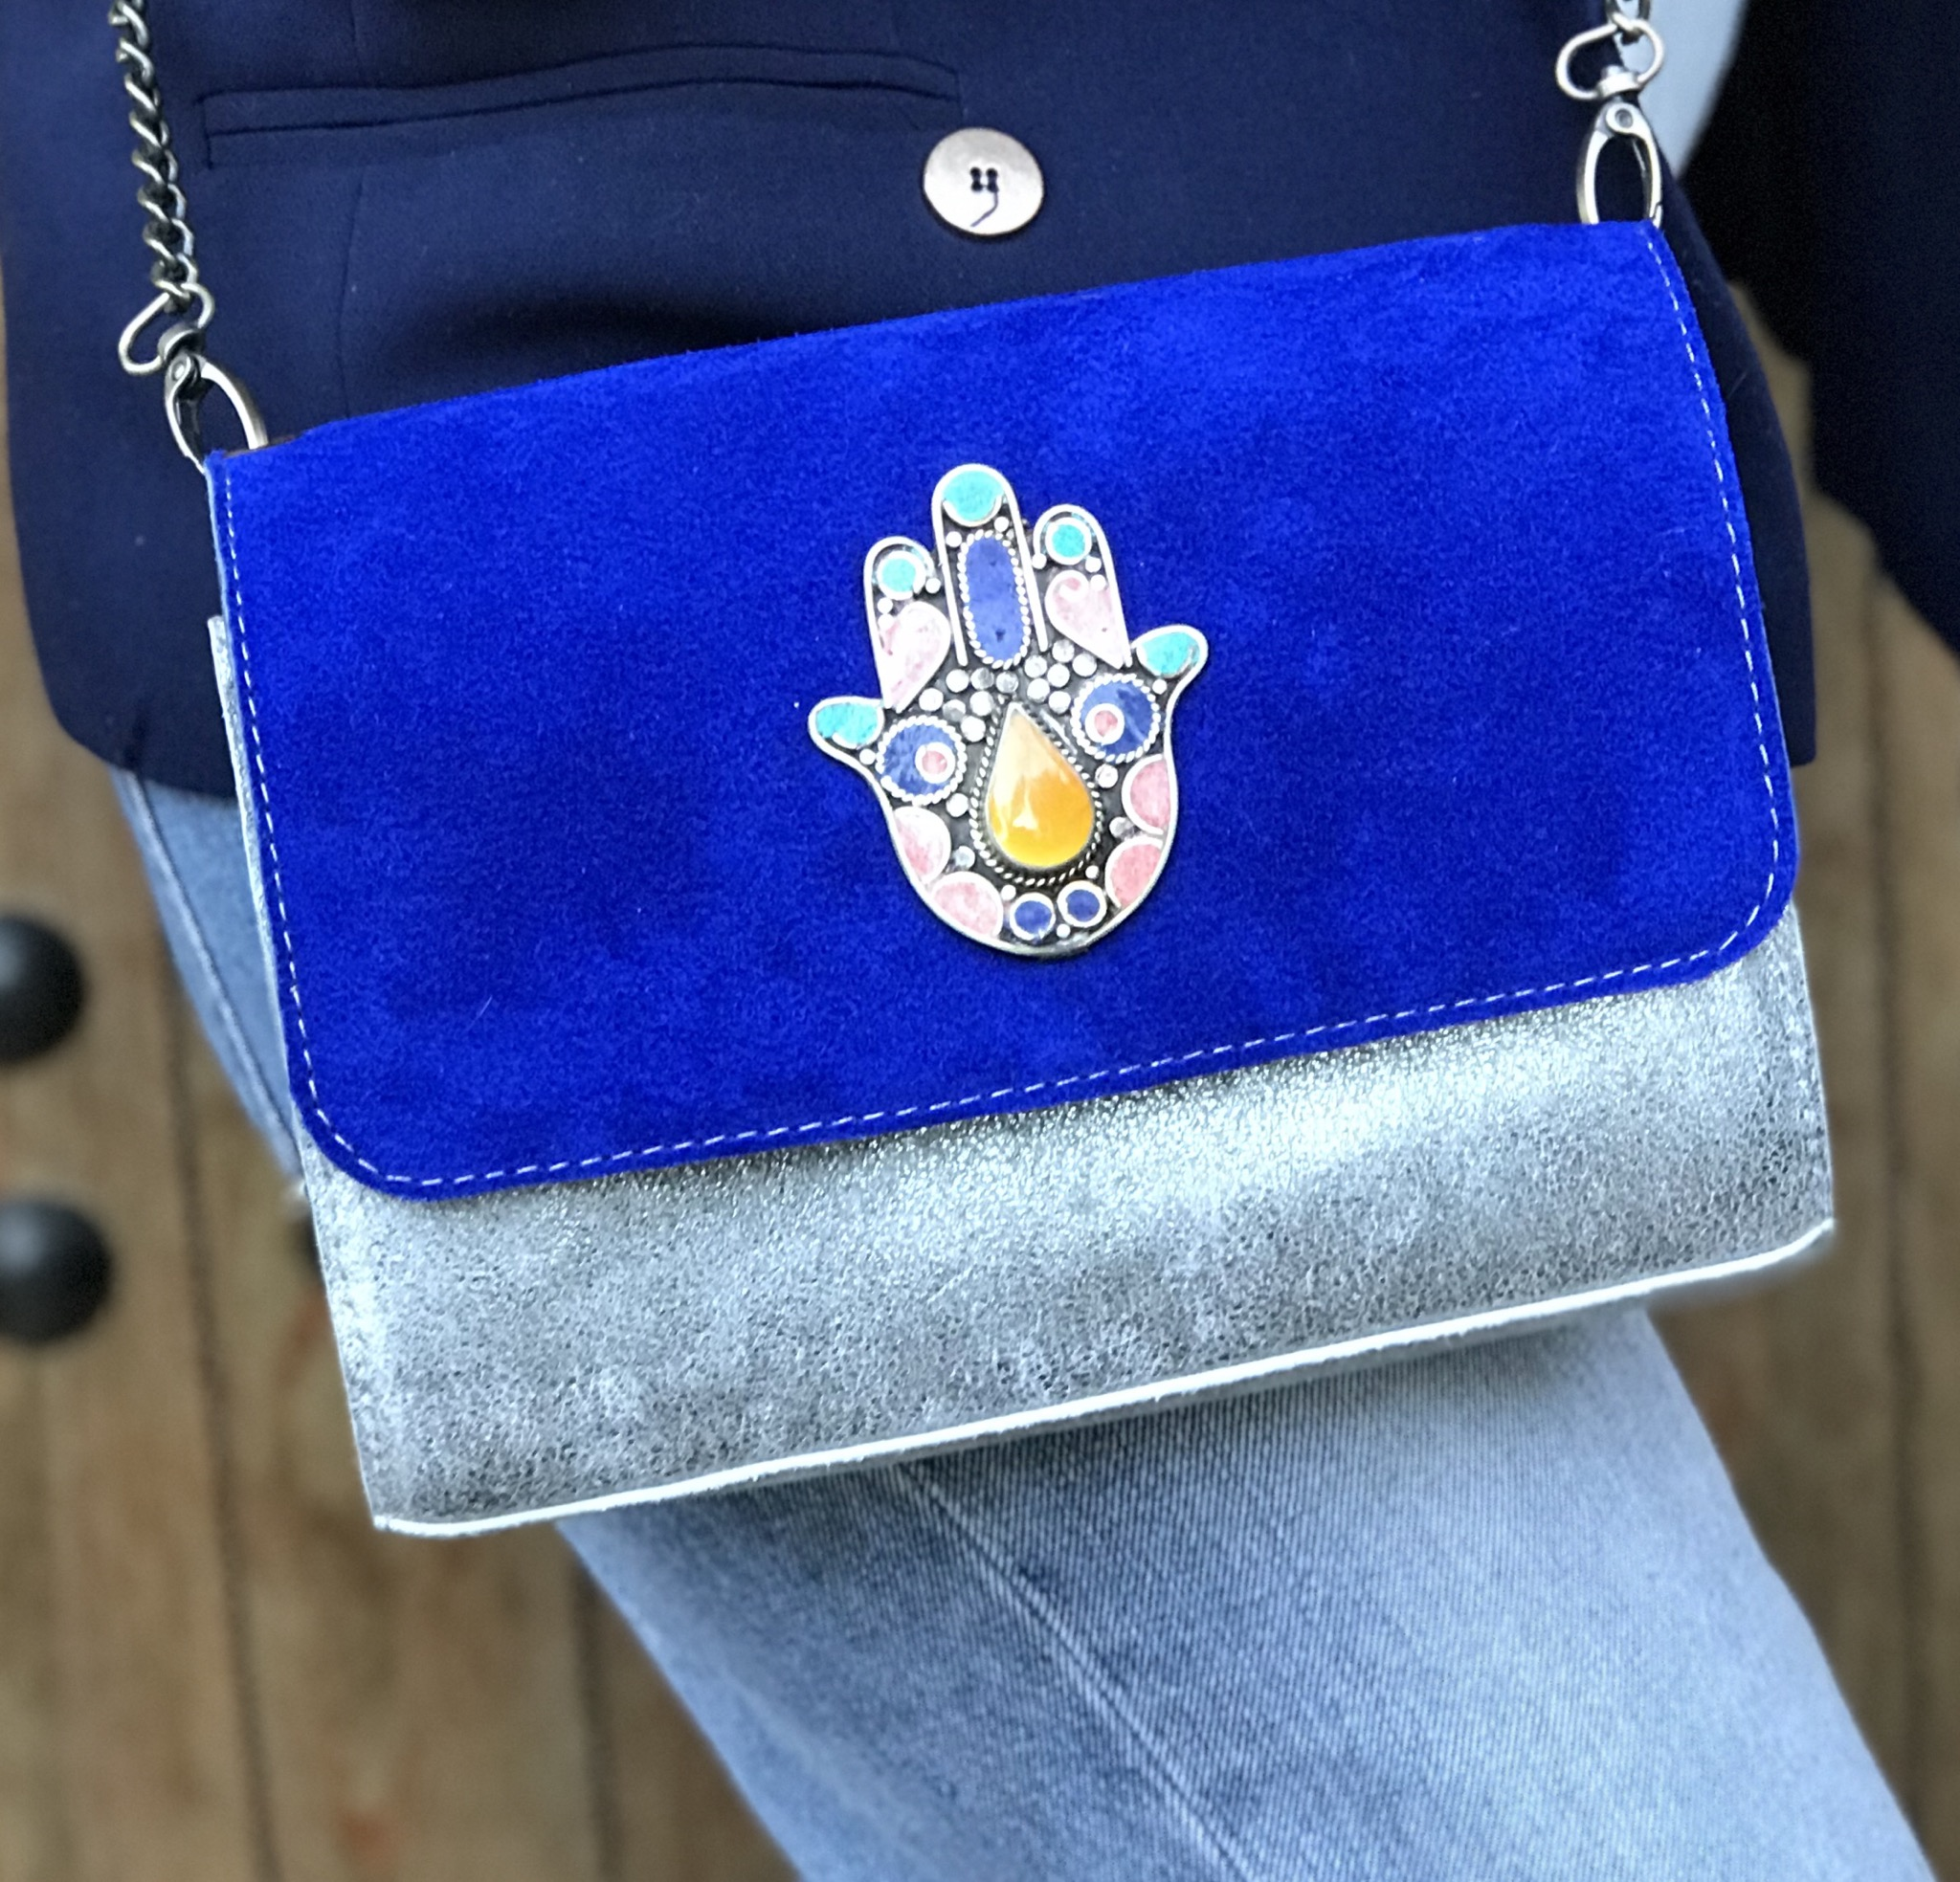 bag leather & suede leather blue majorelle & silver with khmissa